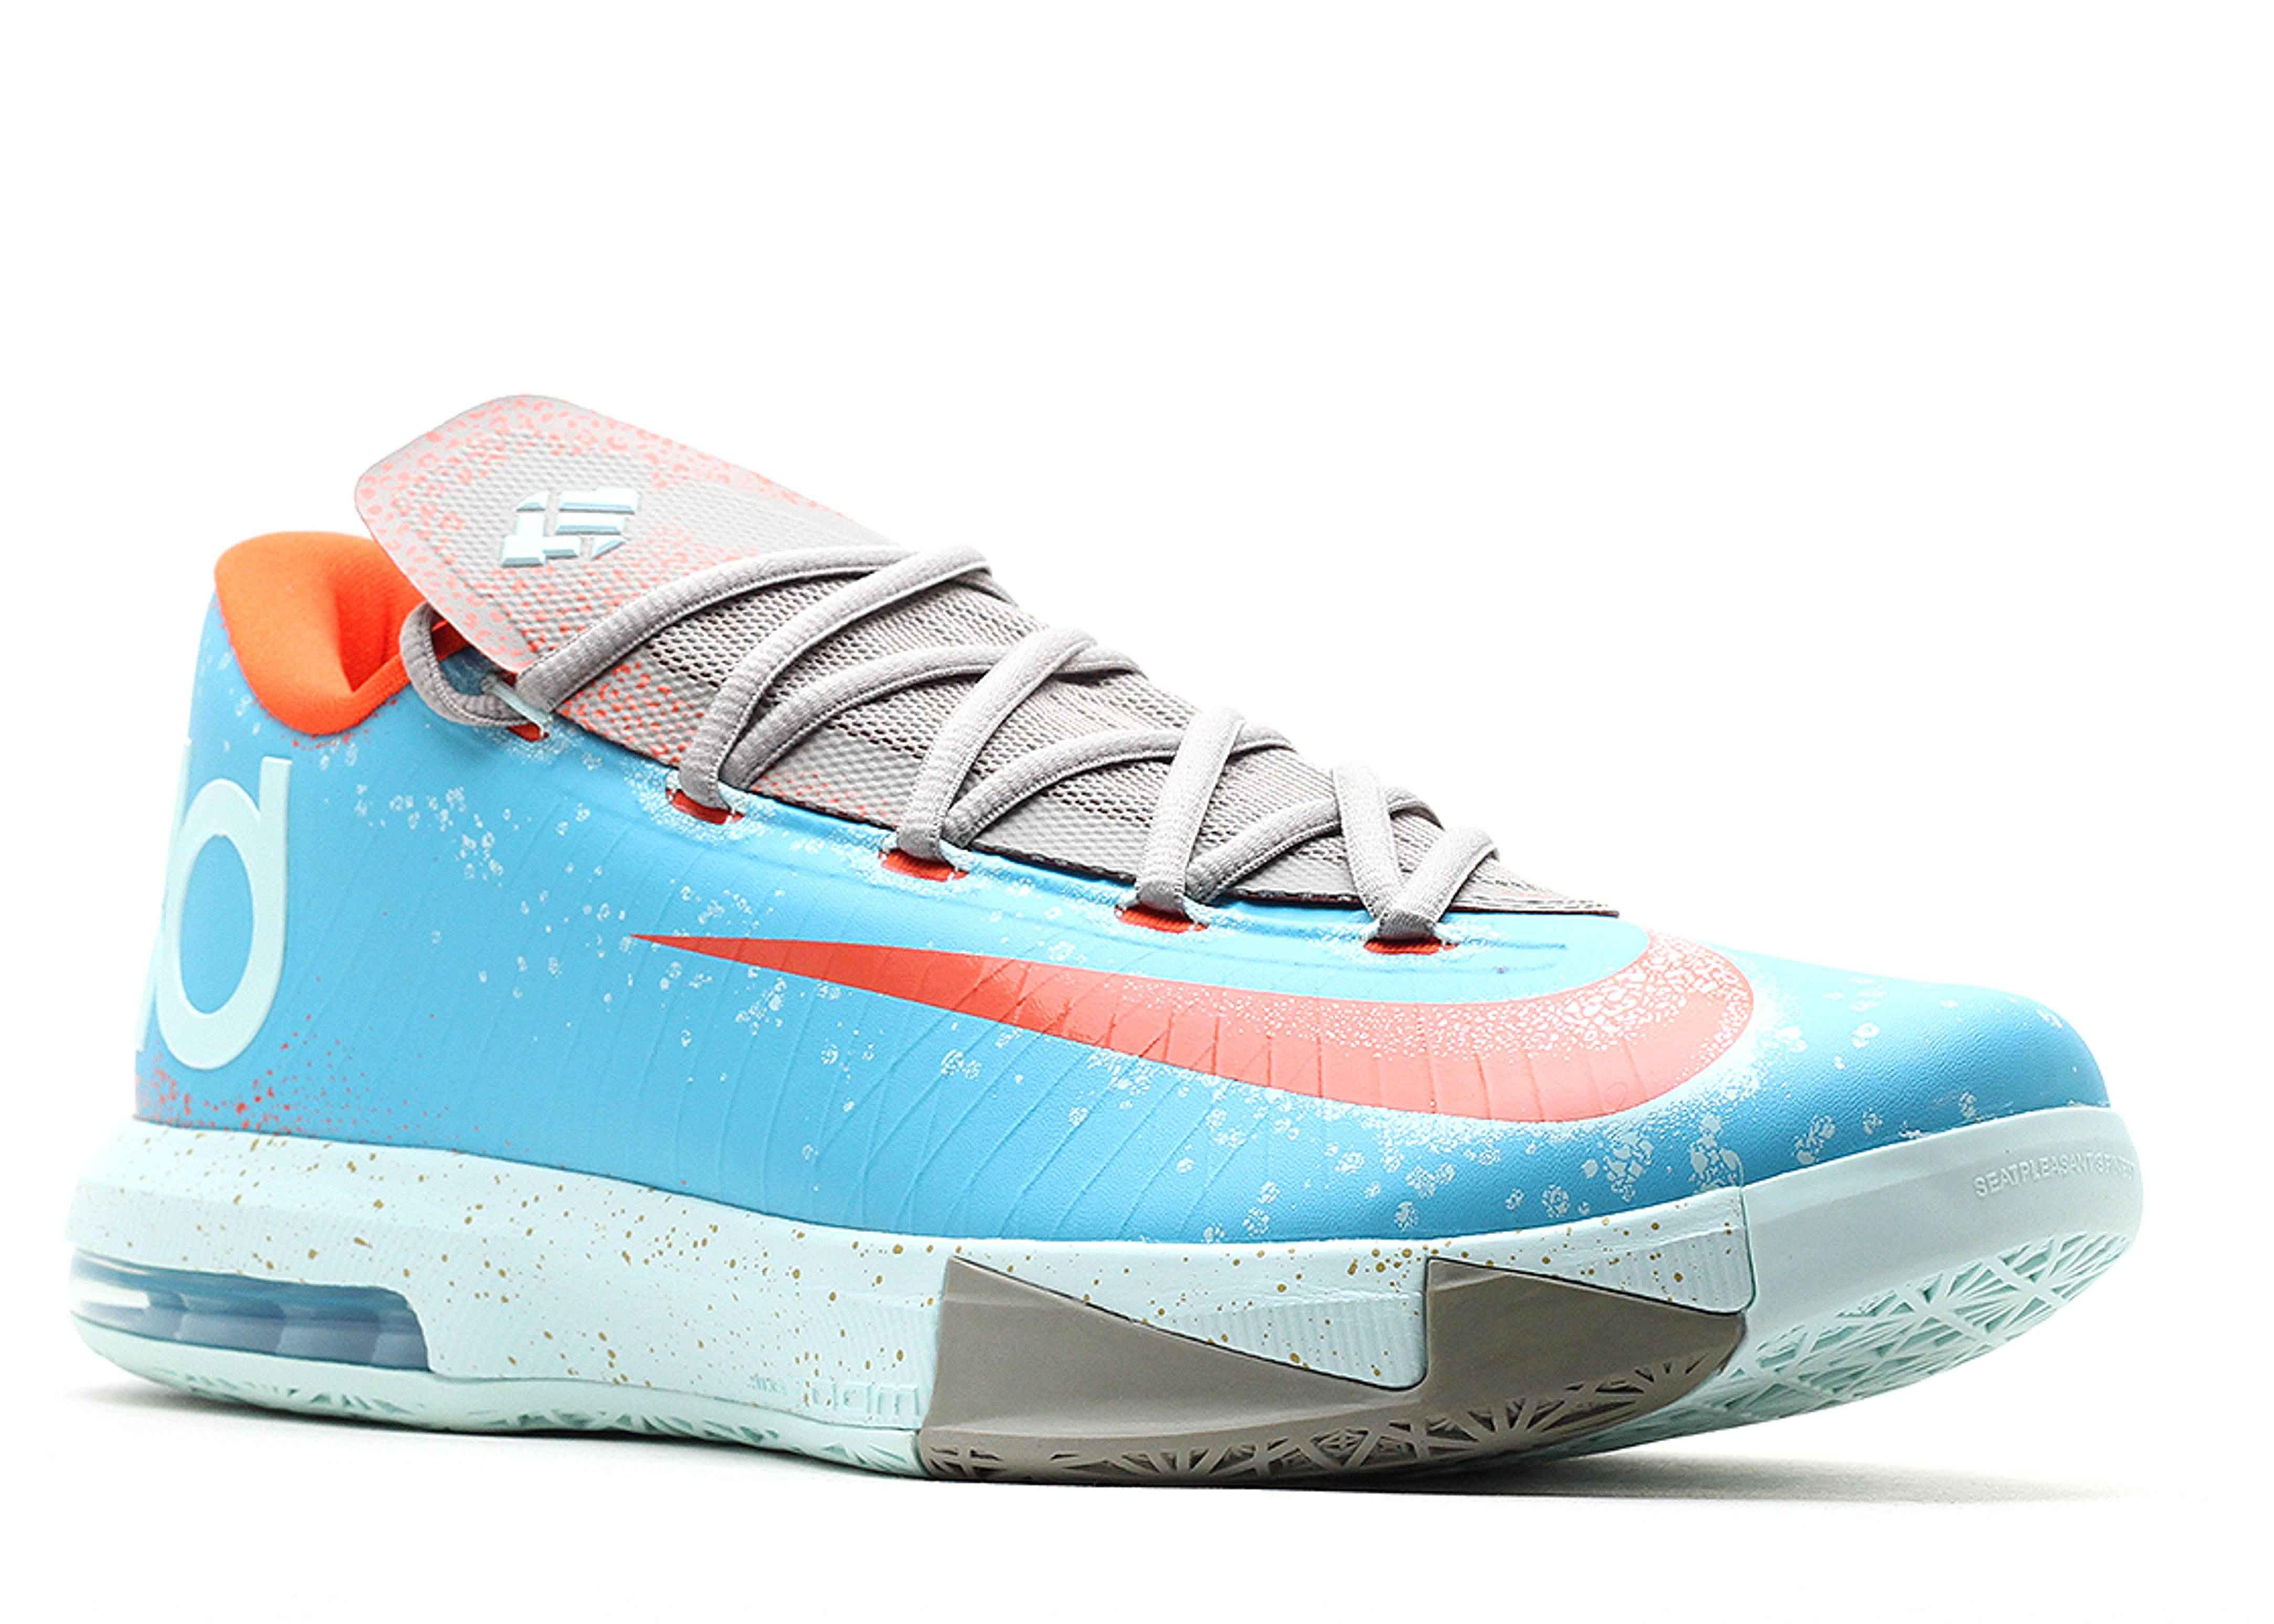 kd 6 quotmaryland blue crabquot nike 599424 400 gamma blue